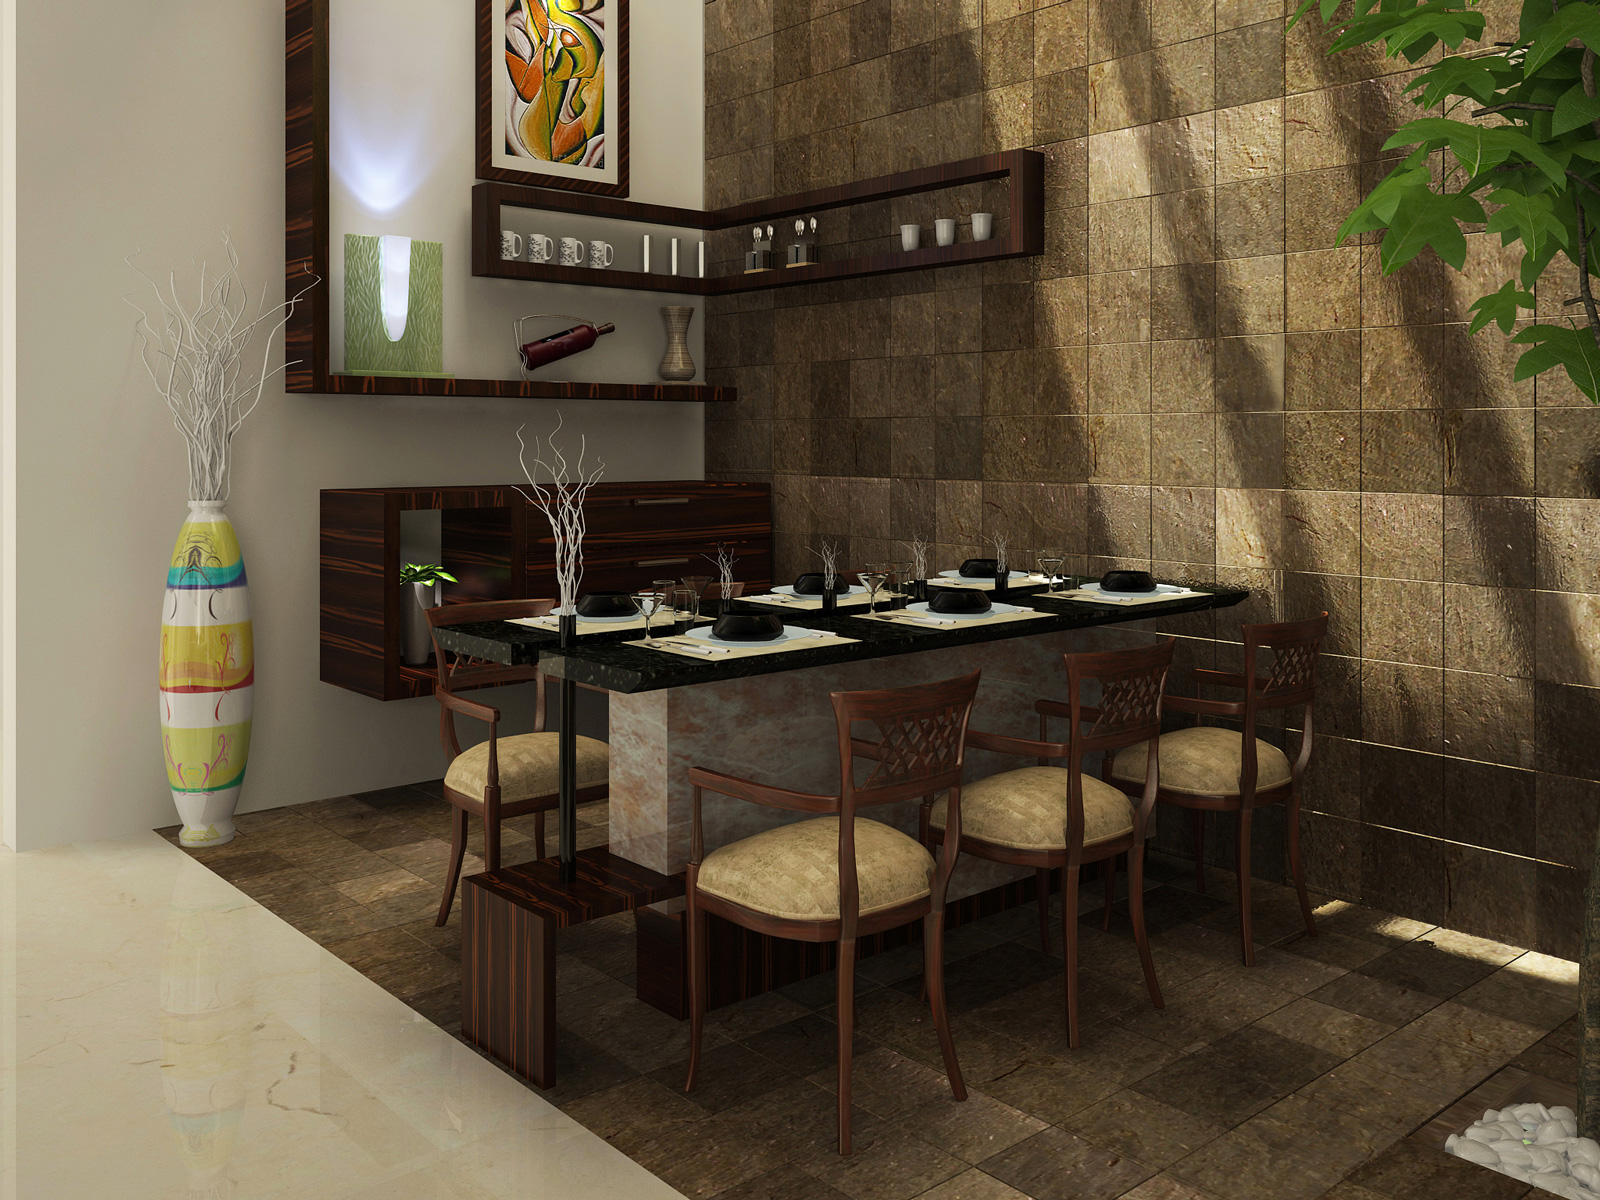 Kerala dining room design style photos home interior in india for Home dining hall design